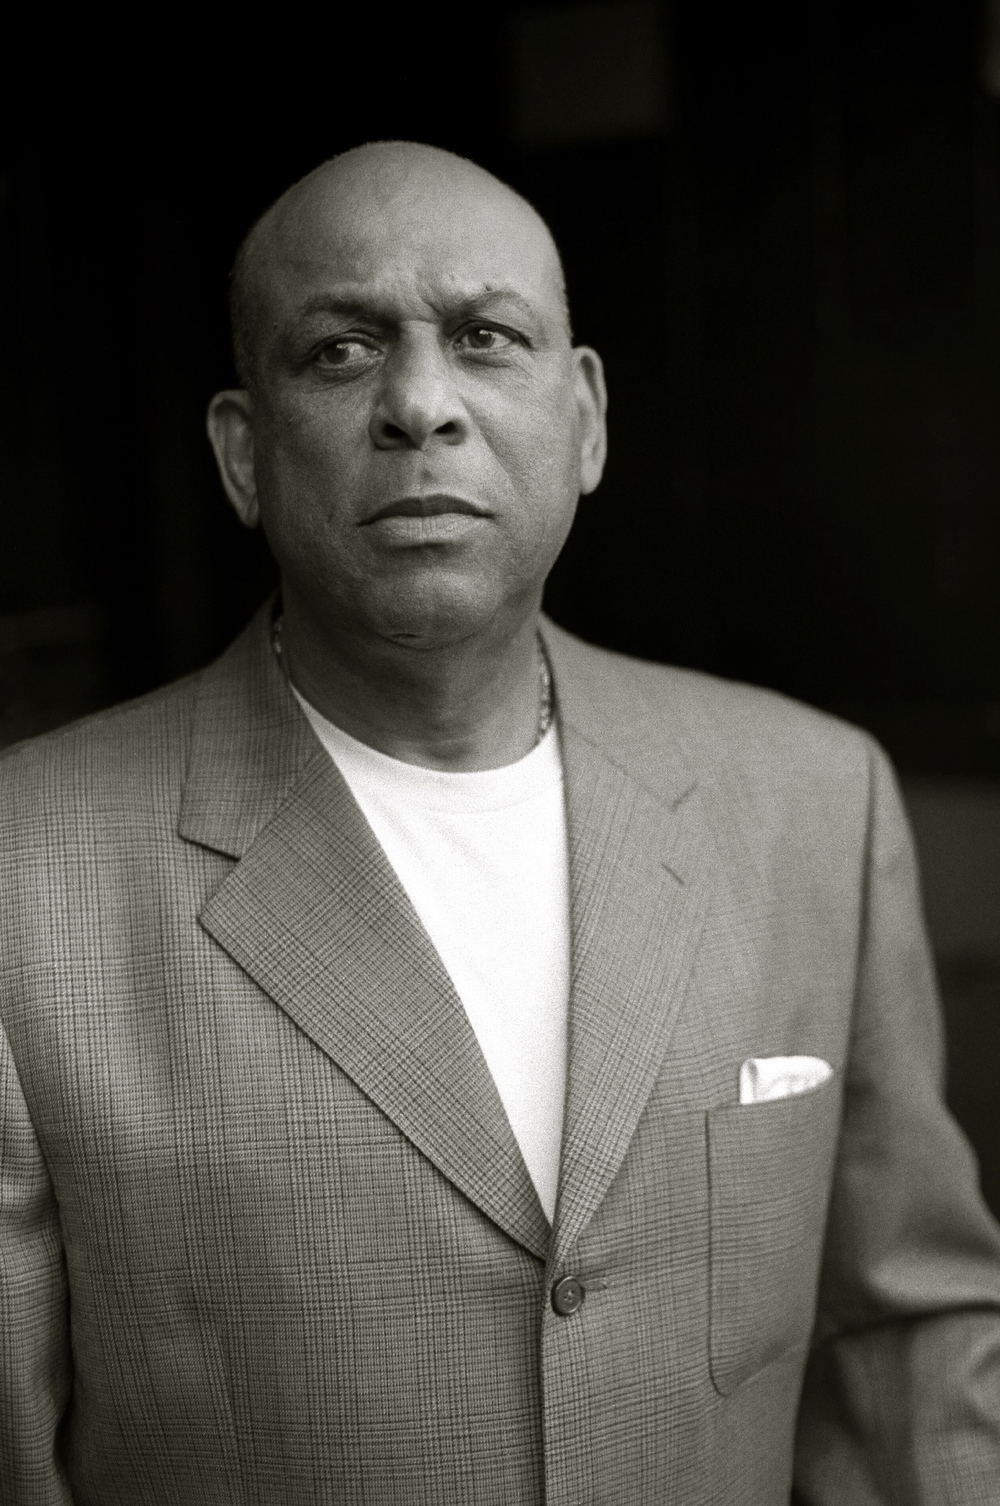 Baseball Hall of Famer, Orlando Cepeda